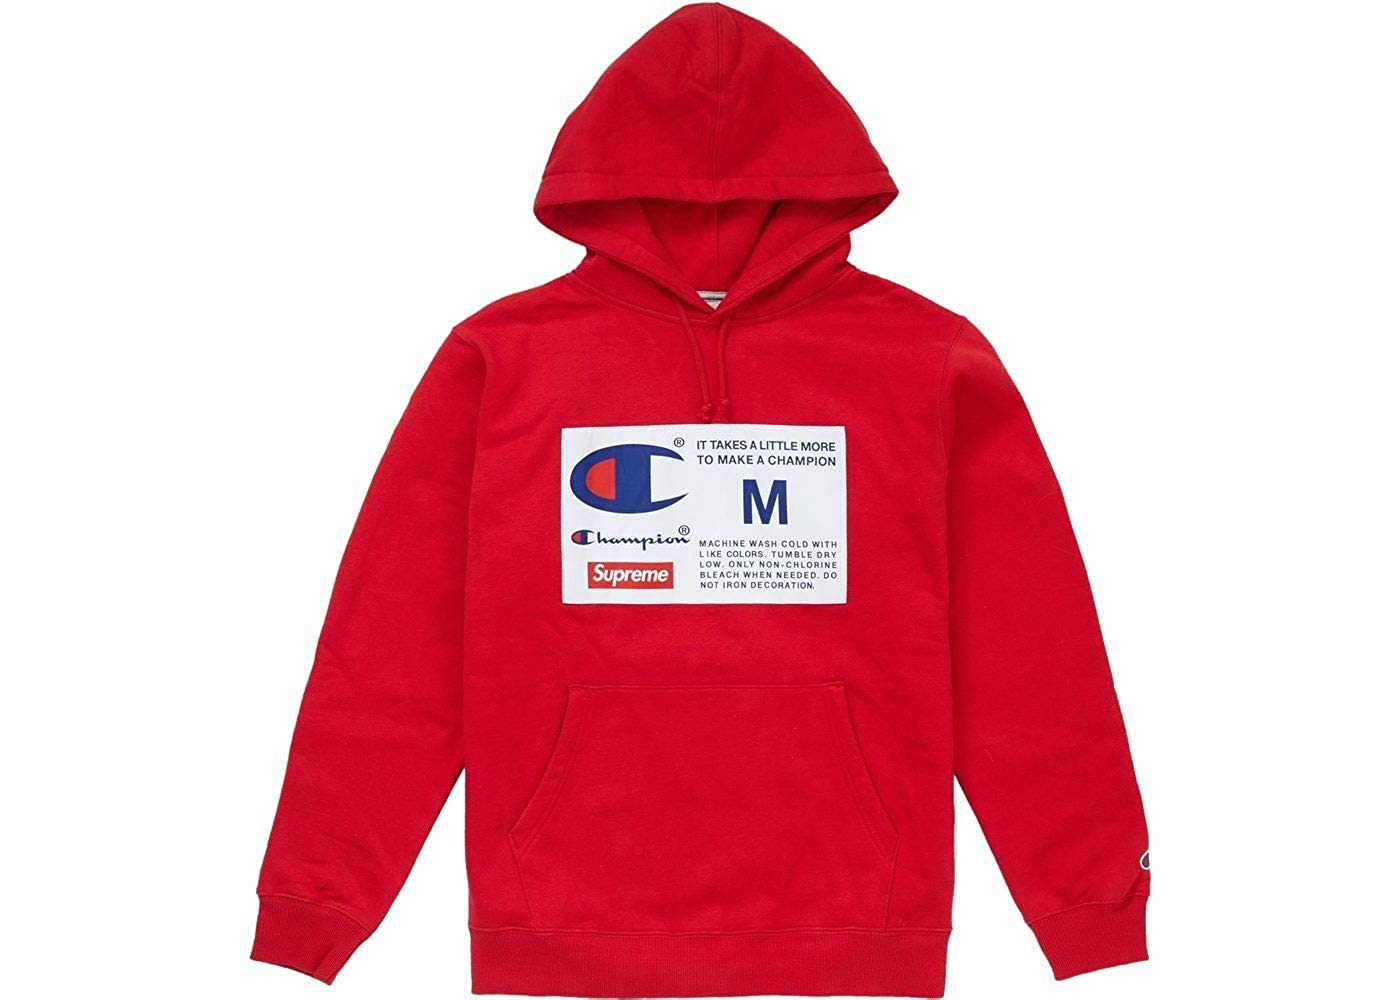 3cfc08018a9 Amazon.com  Supreme Champion Label Hooded Sweatshirt Hoodie Red FW18 100%  Authentic Real Designer Rare  Clothing